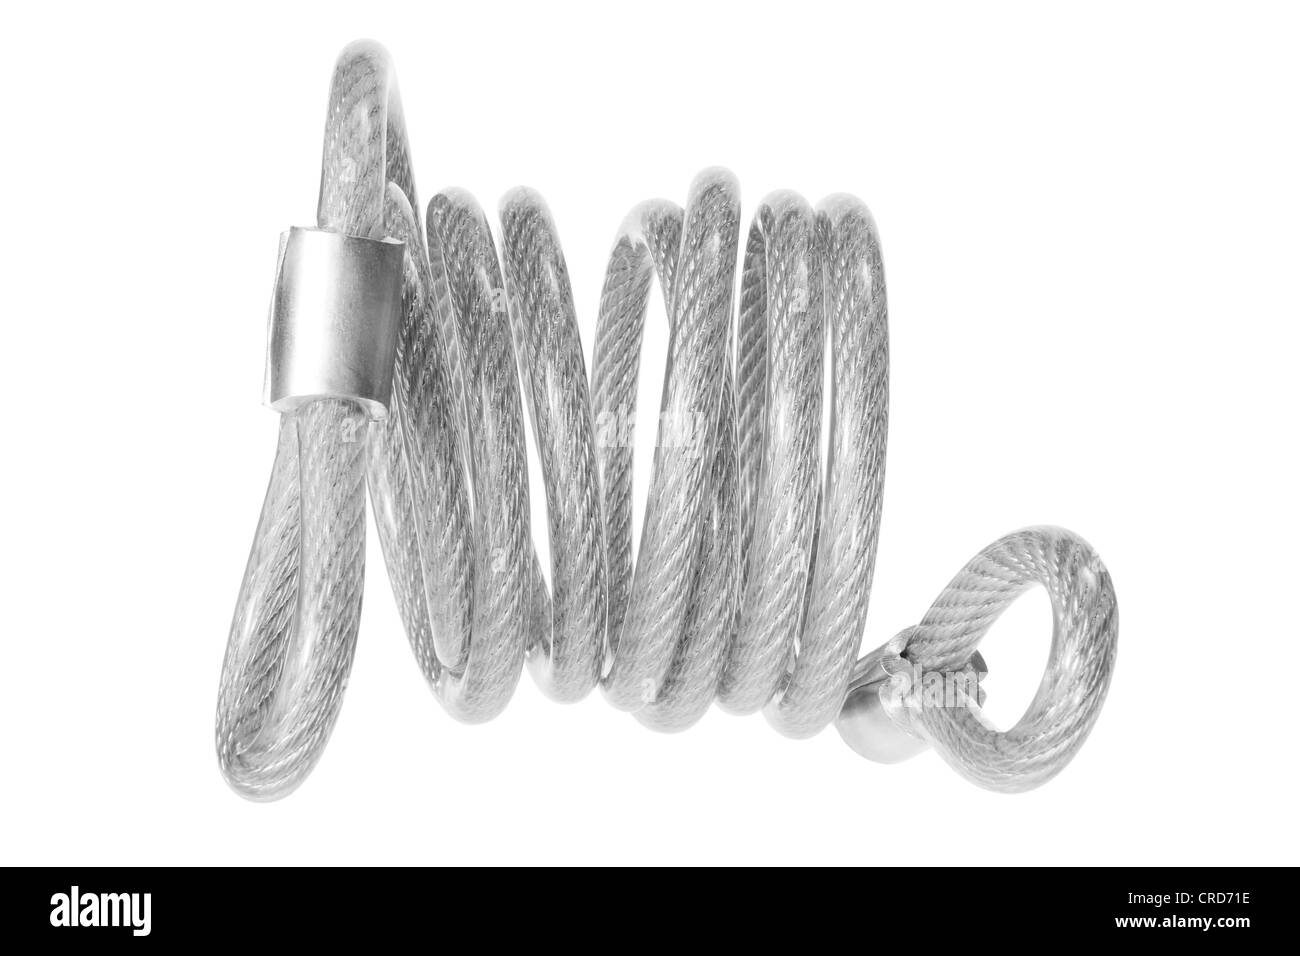 Steel Wire Rope Stock Photos & Steel Wire Rope Stock Images - Alamy